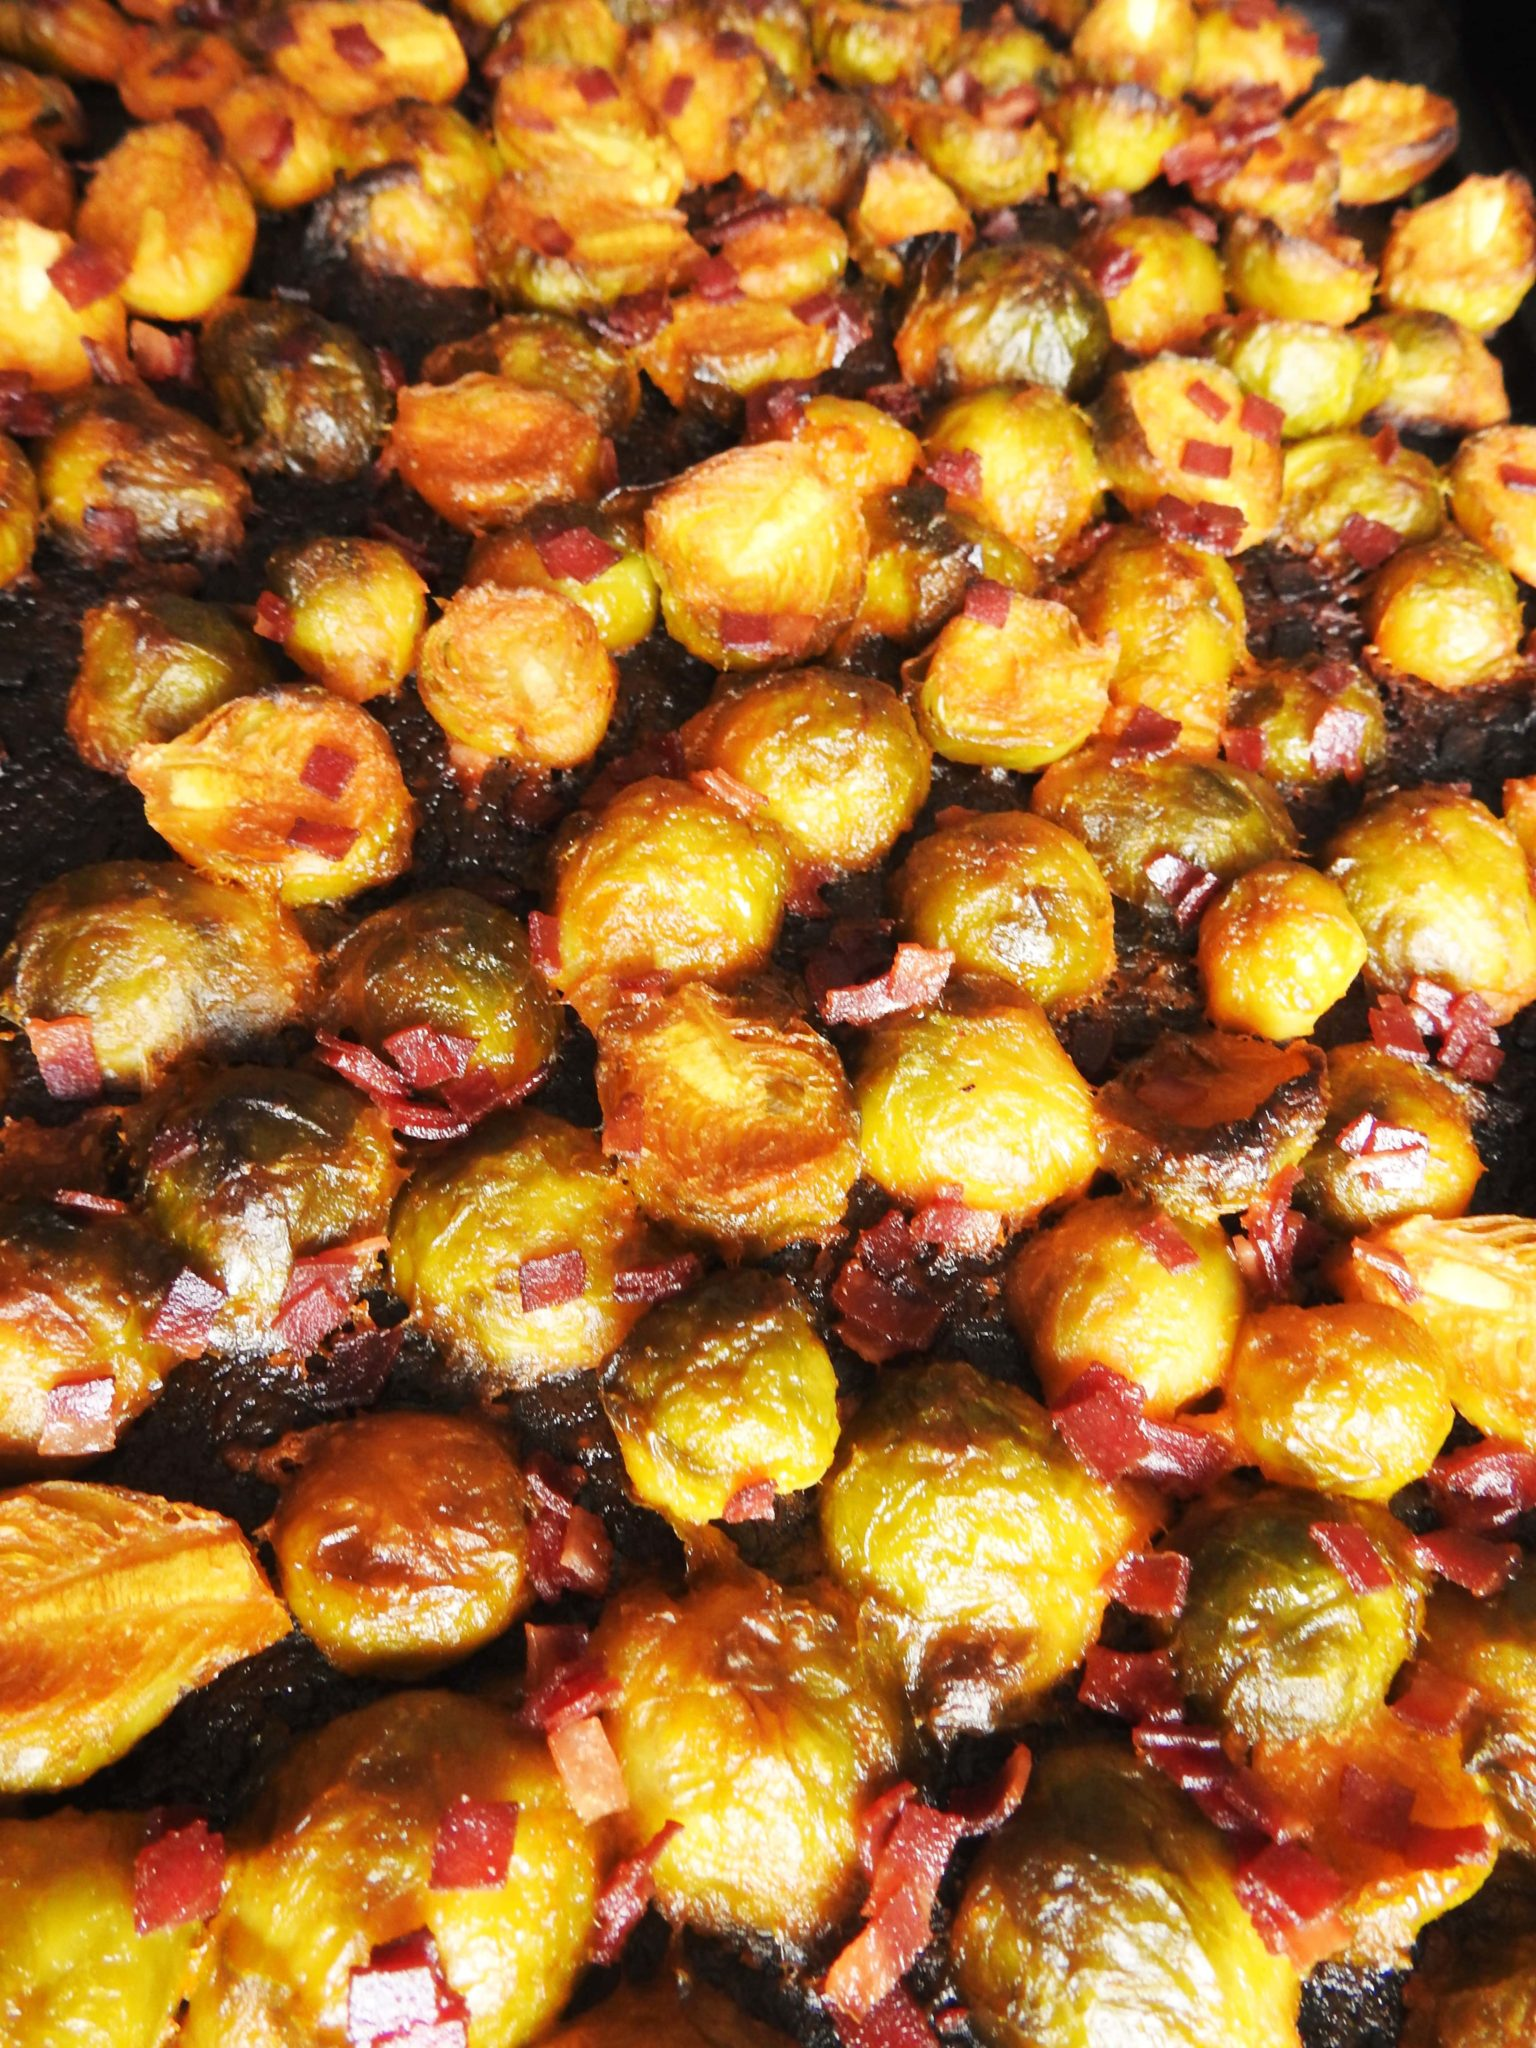 Spicy Brussel Sprouts with Turkey Bacon Bites